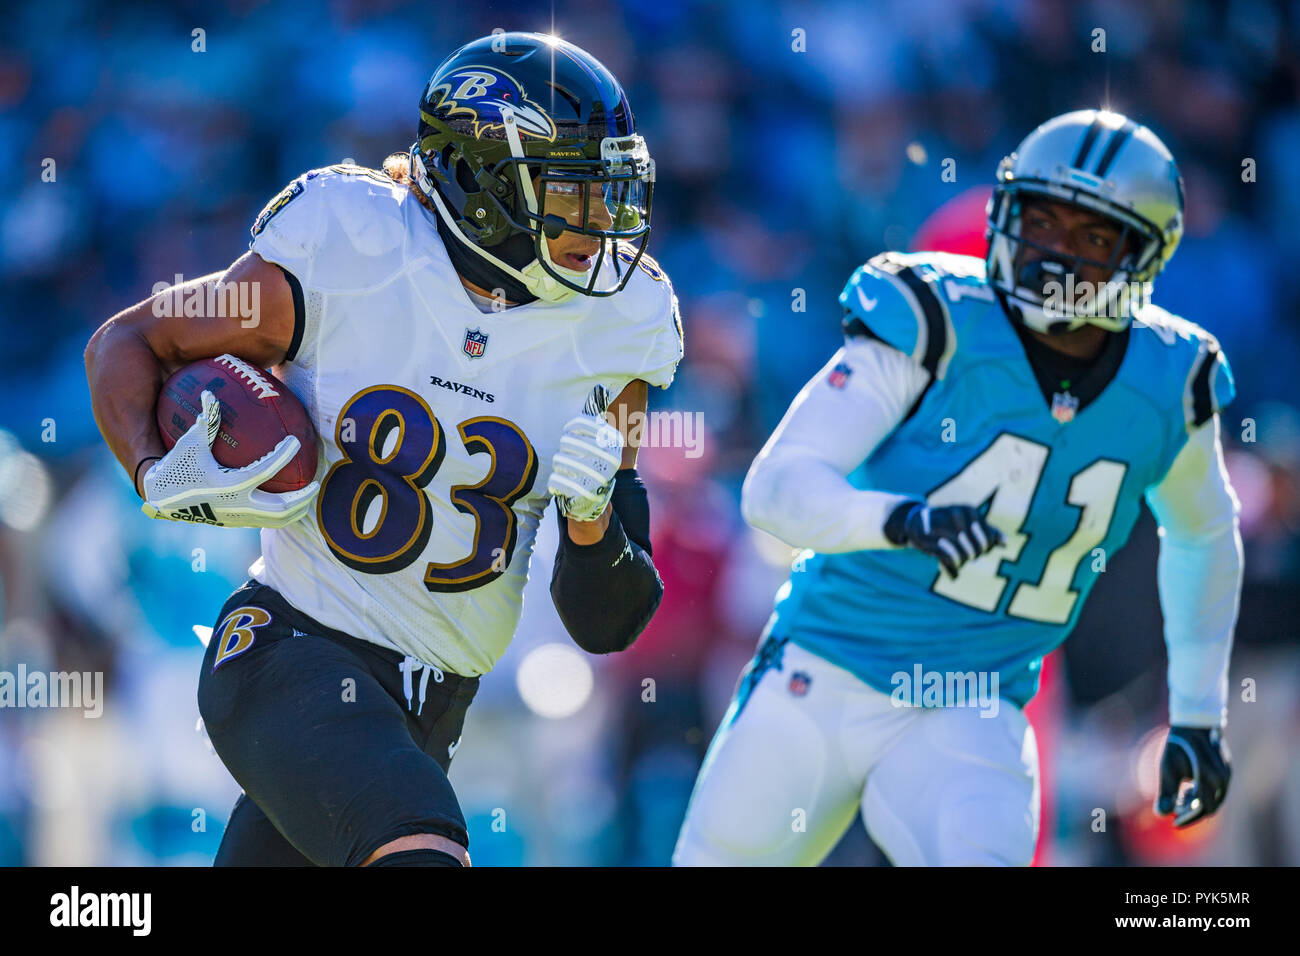 09e1244915dd Baltimore Ravens wide receiver Willie Snead (83) during the NFL football  game between the Baltimore Ravens and the Carolina Panthers on Sunday  October 28